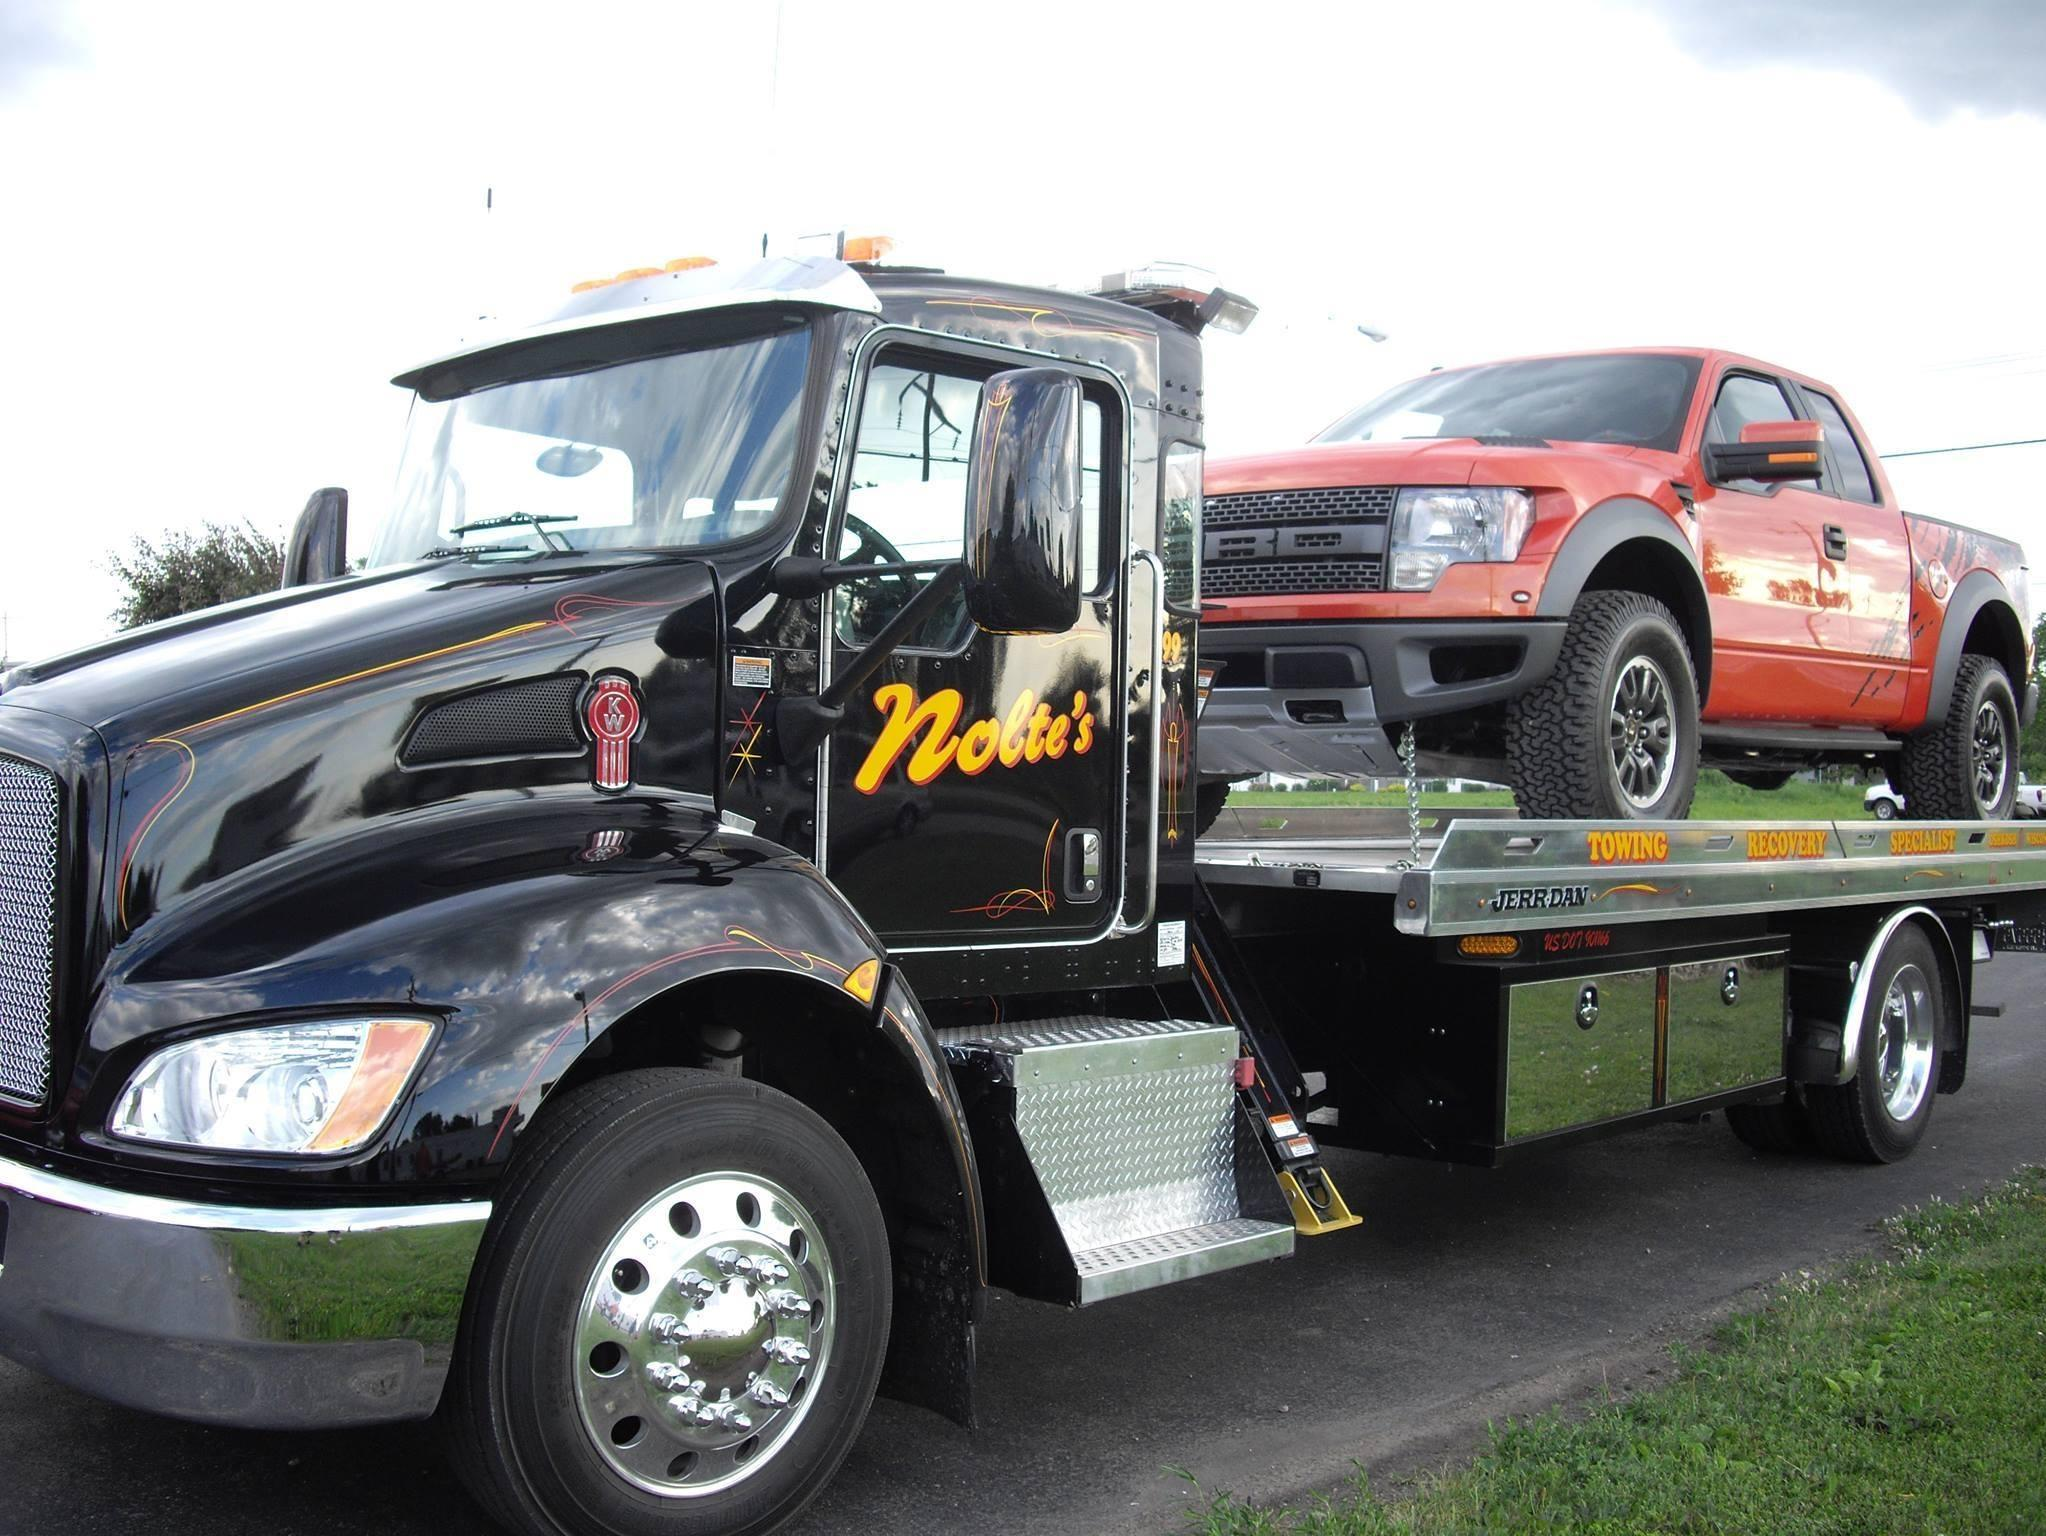 Nolte's Auto Service & 24Hour Towing in Oshkosh, WI, photo #15